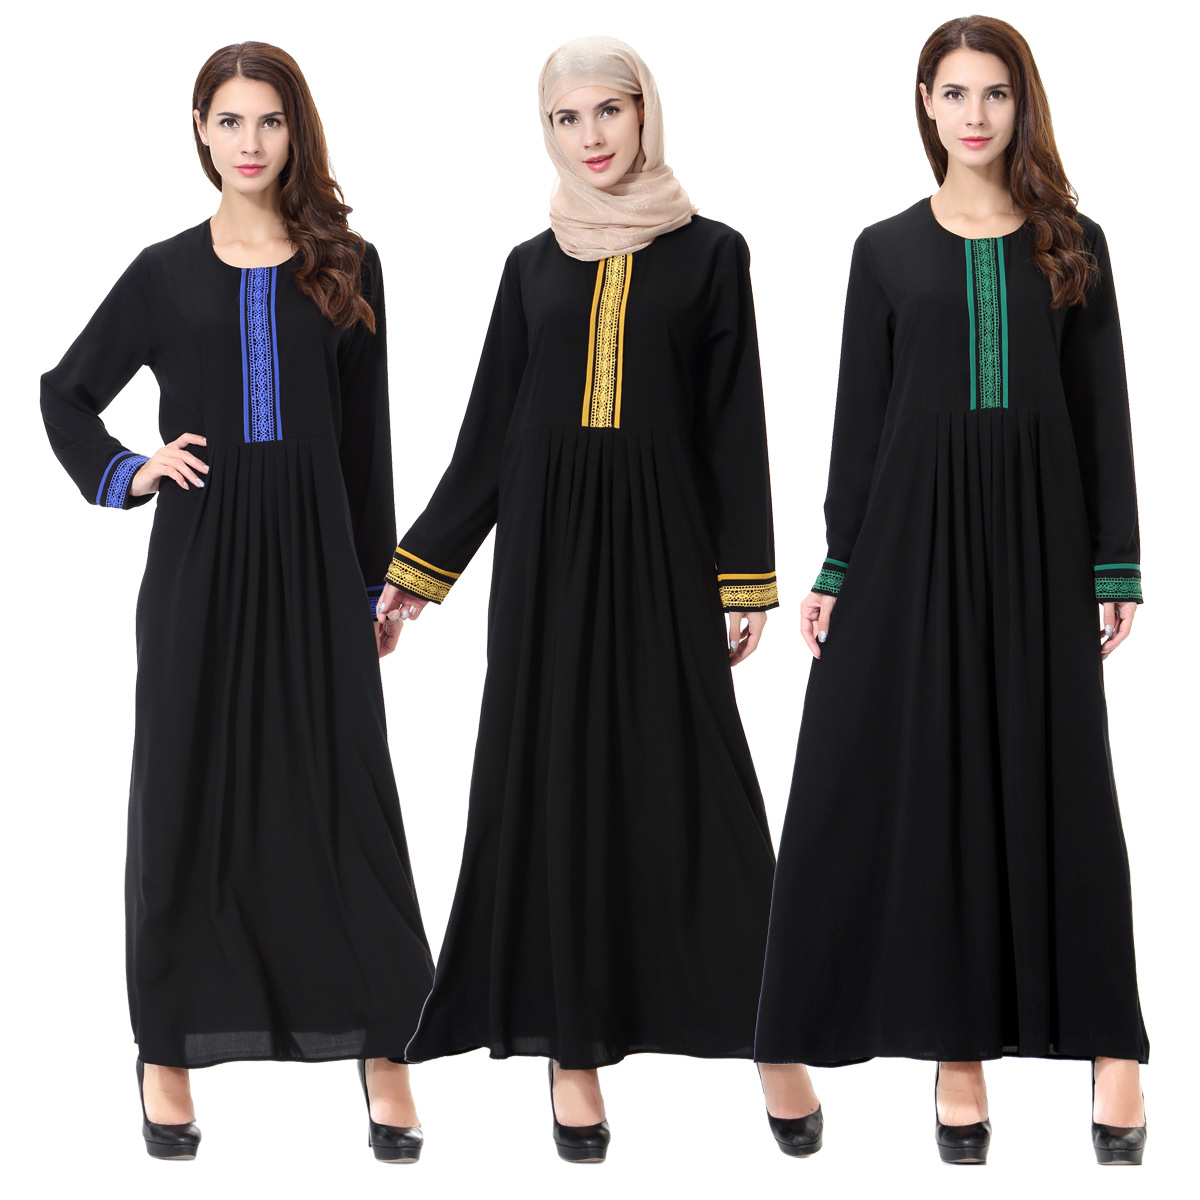 Muslim Abaya Hijab Dress Women musulman prayer Robe Arab Islamic Clothing Islam moroccan Kaftan Tunic Middle East Maxi Vestidos